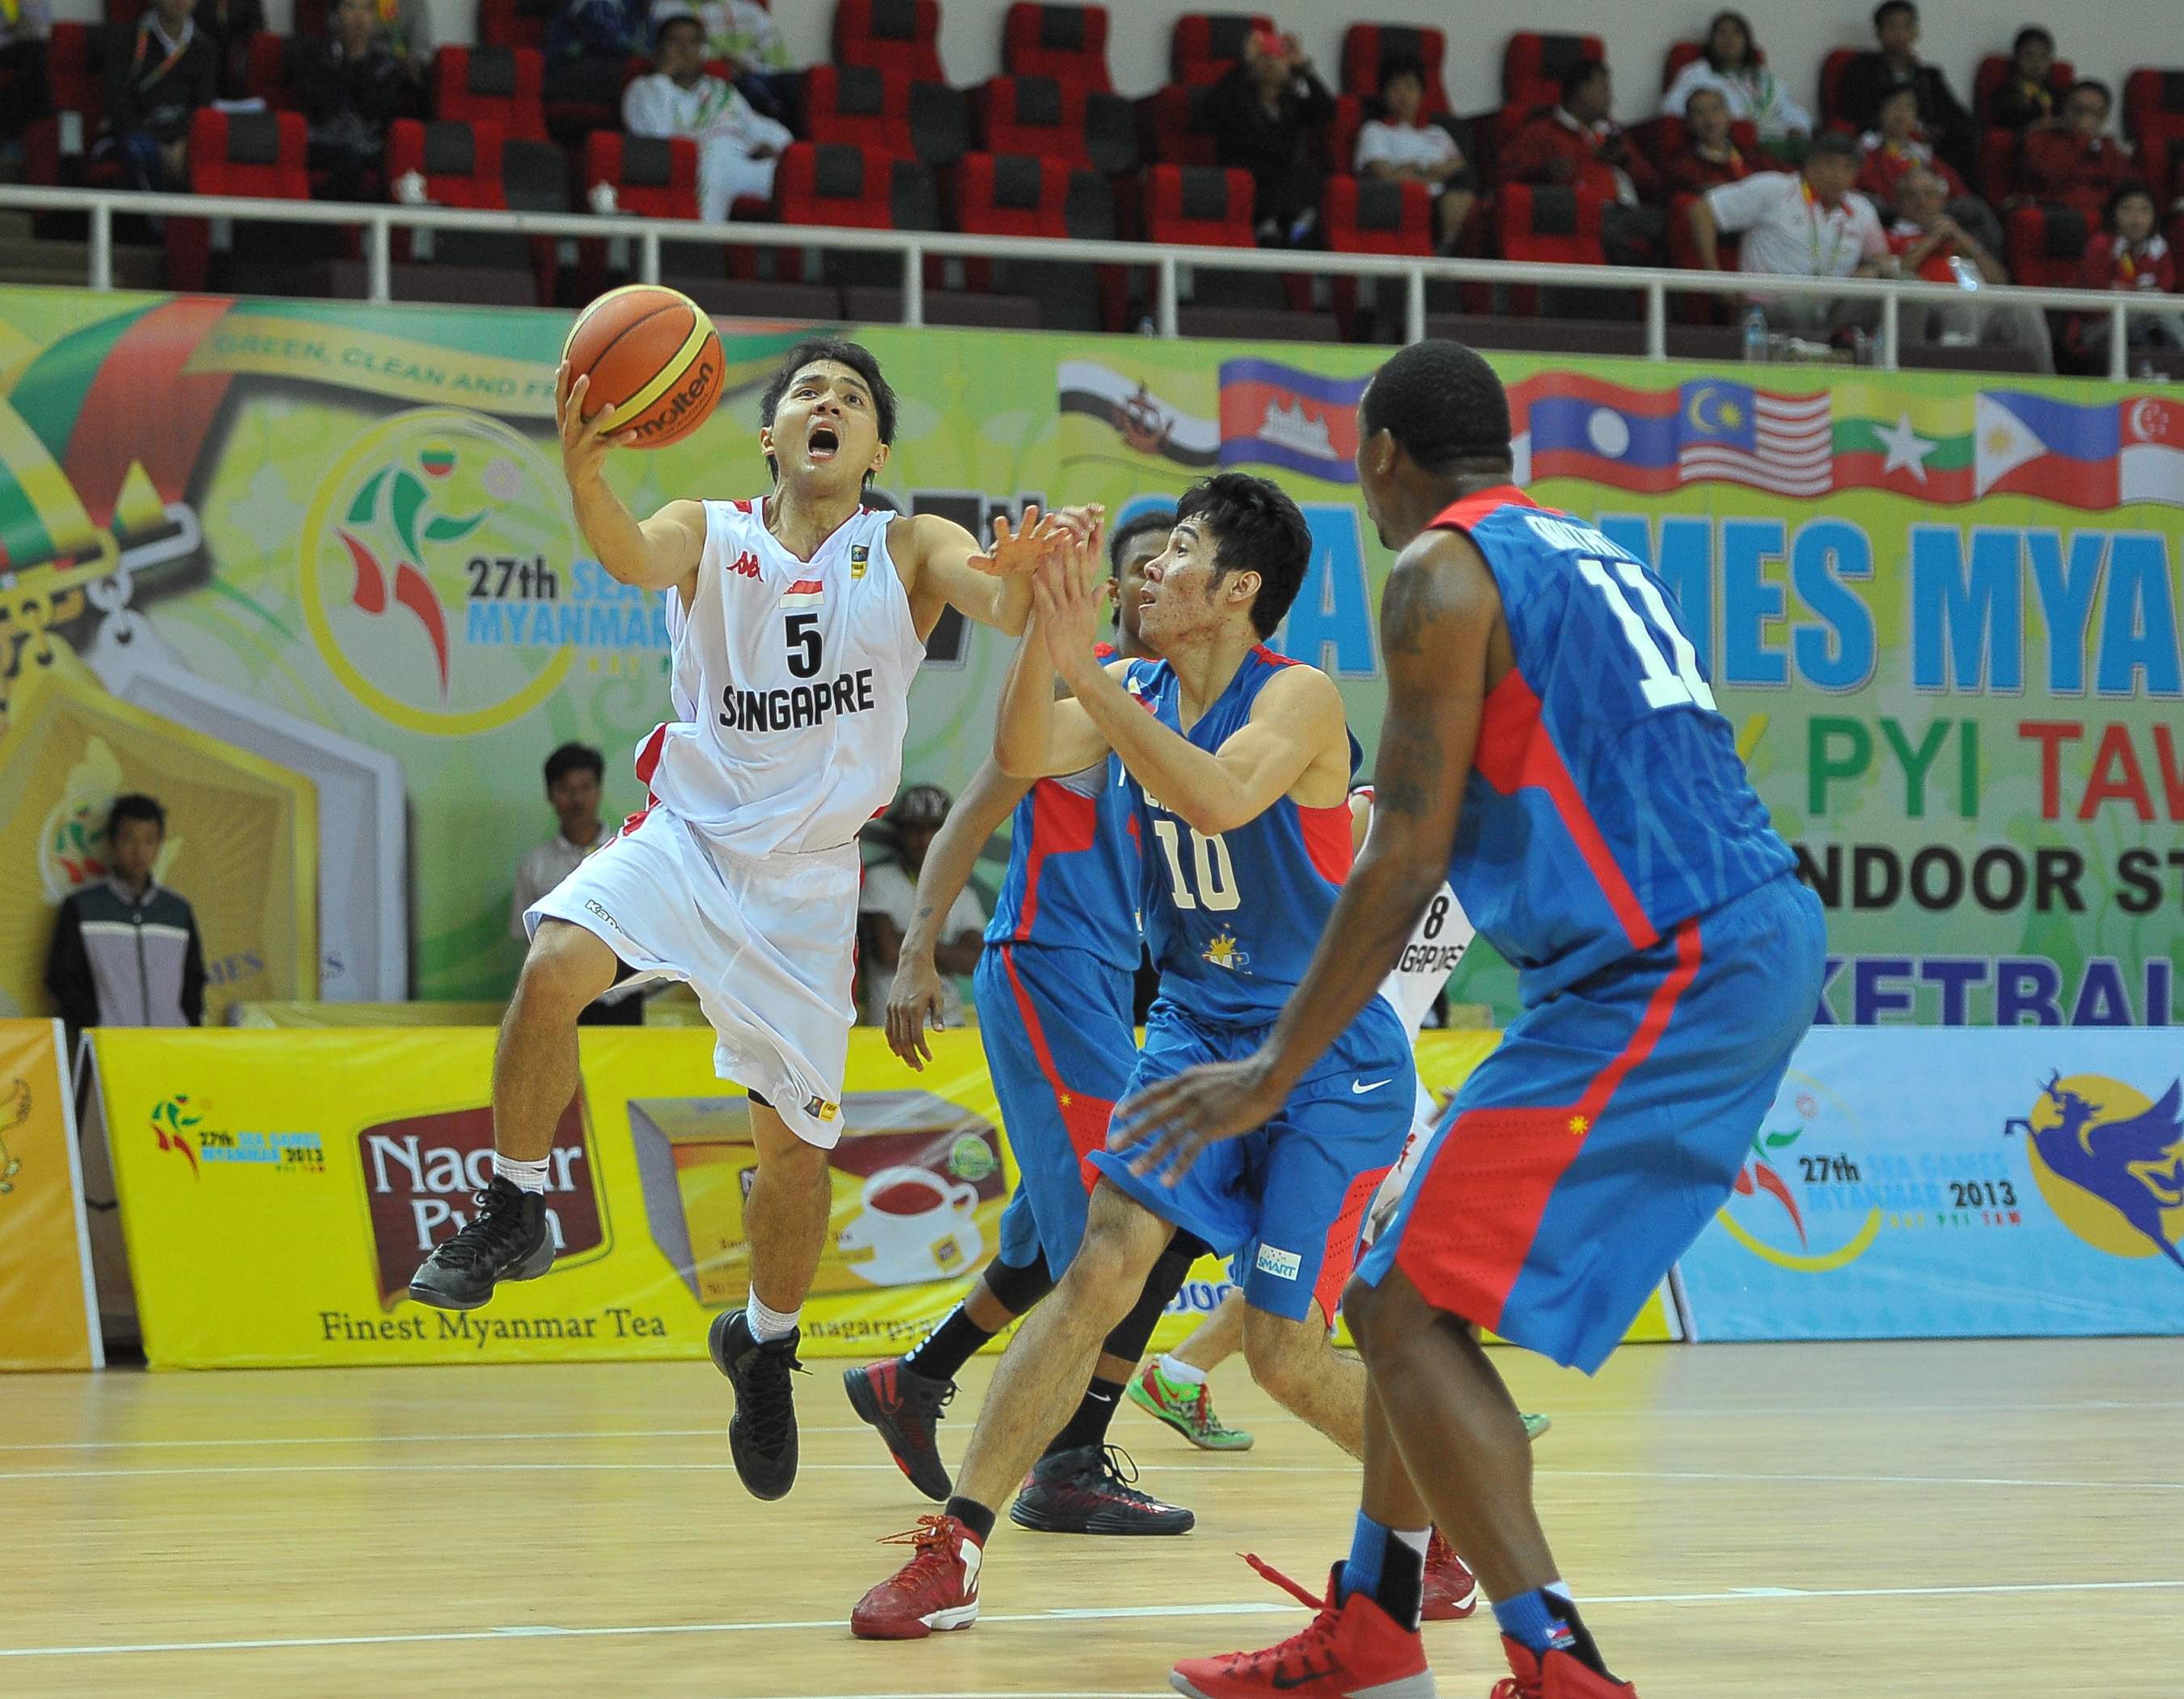 11th SEABA Men's Basketball Championship to be held in Singapore